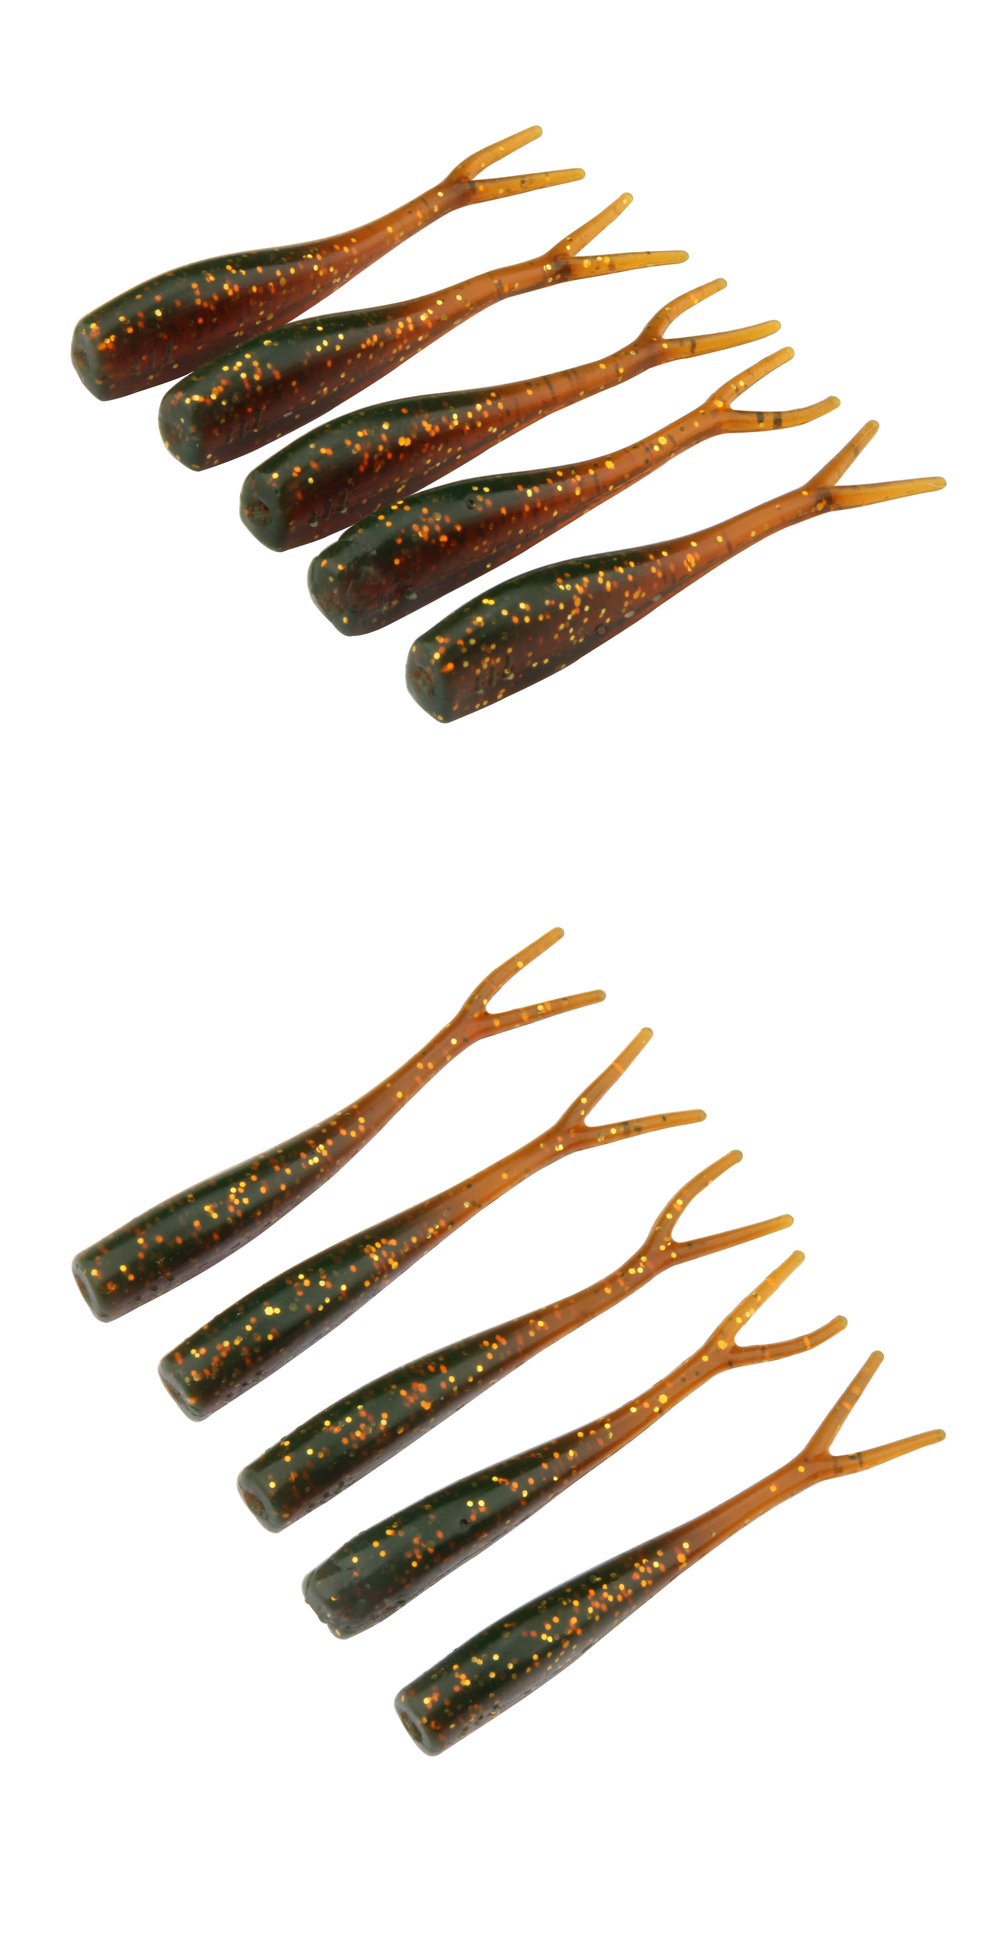 5cm 1g Mini Lures Soft Bait Fishing Worms 4colors OEM Acceptable Soft Fishing Lure Swimbaits Split Double Tail Shad-12 Per Bag (6)